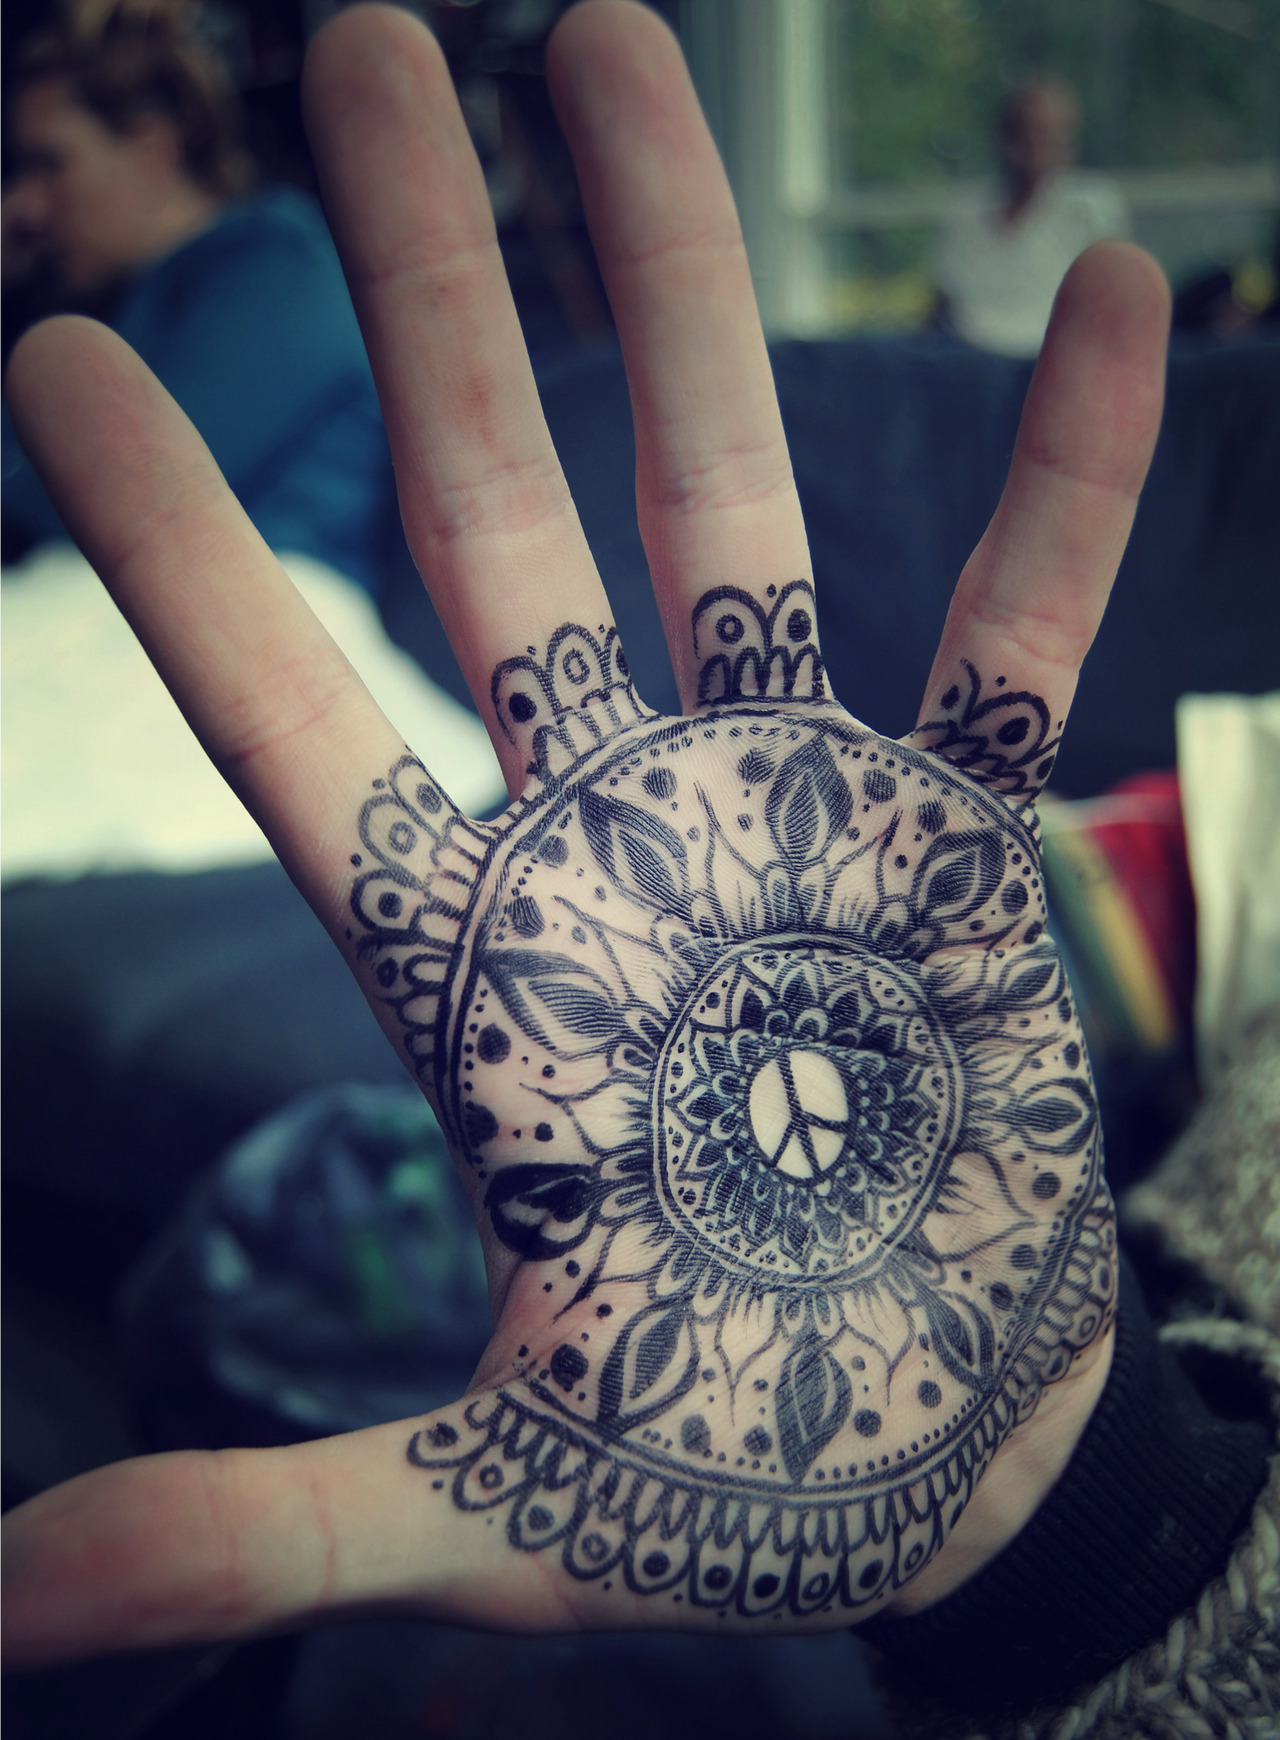 thelastbreath-girl:  Hand art | via Tumblr on We Heart It - http://weheartit.com/entry/61100297/via/consumiranda   Hearted from: http://insinuazione.tumblr.com/